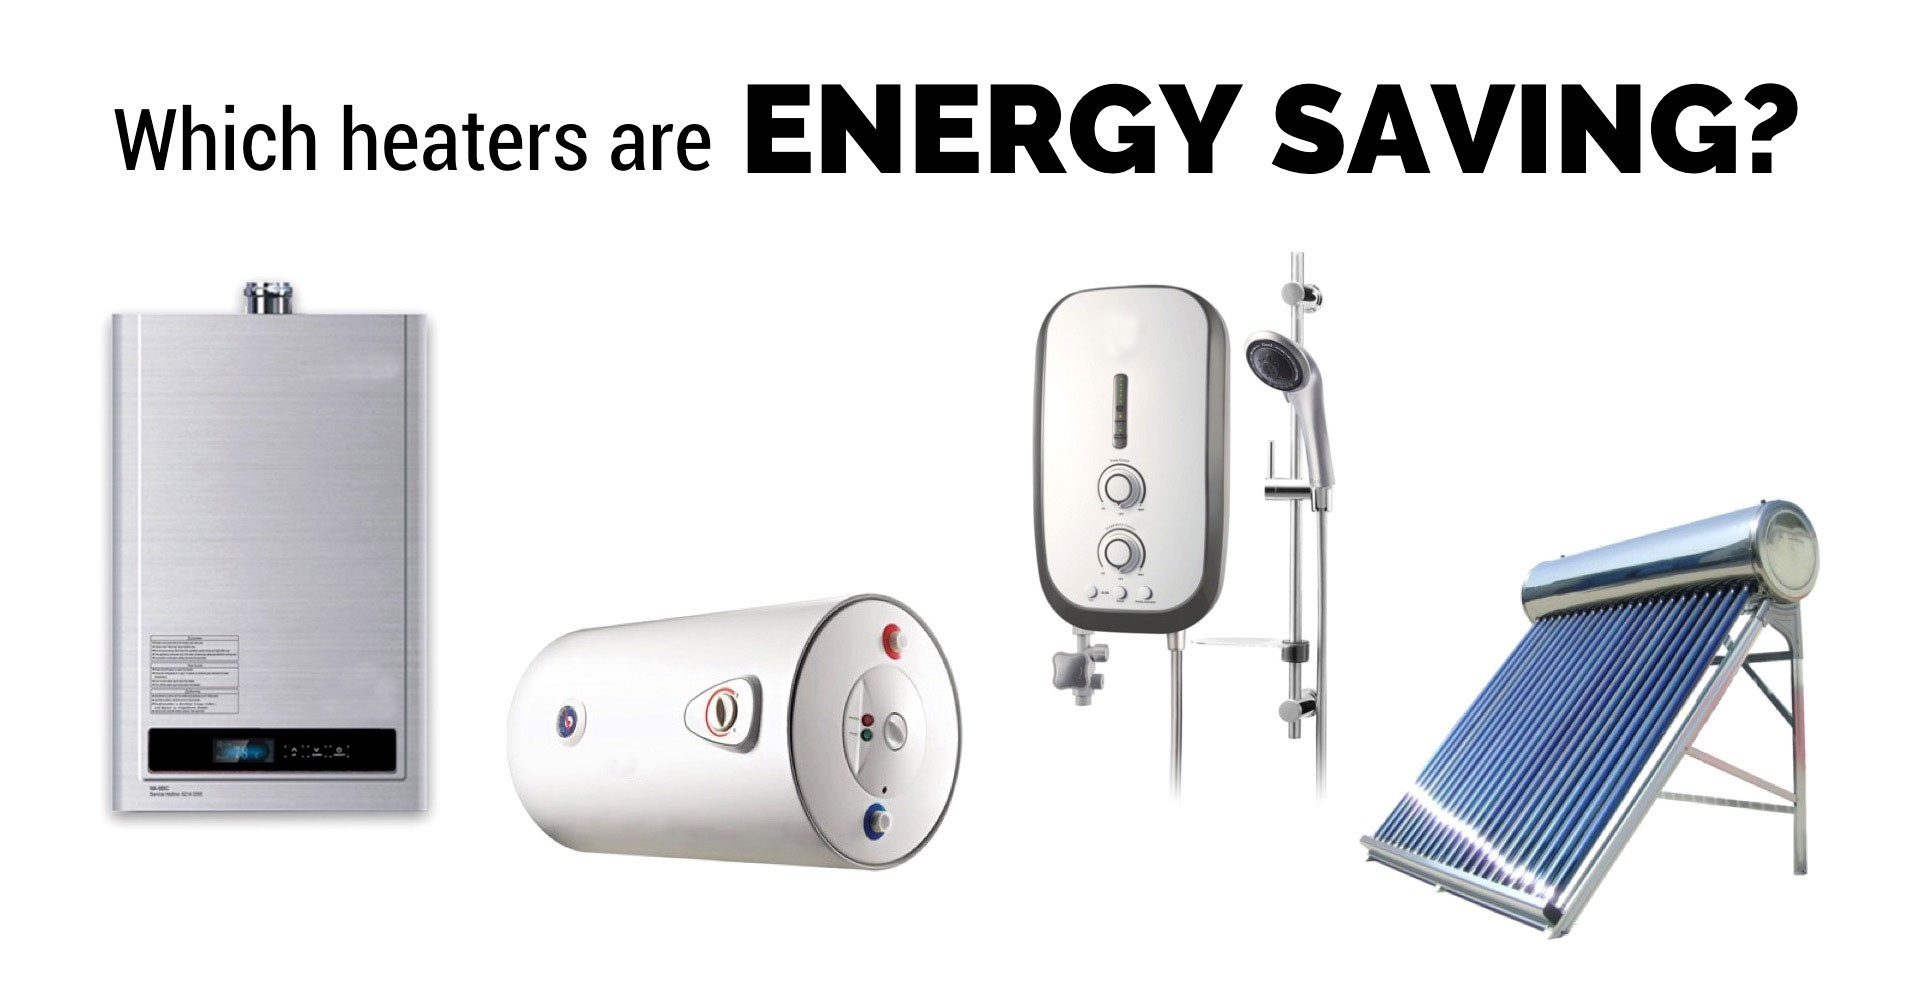 Water Heater Energy Saver-Palm Beach Water Heater Installers-We do Water Heater Installation and Repair, Natural Gas Water Heaters, 24/7 Emergency Water Heater Service and Maintenance, Hybrid Water Heaters, Water Heater Expansion Tank, Commercial Water Heater Services, Tankless Water Heaters Installations, and more